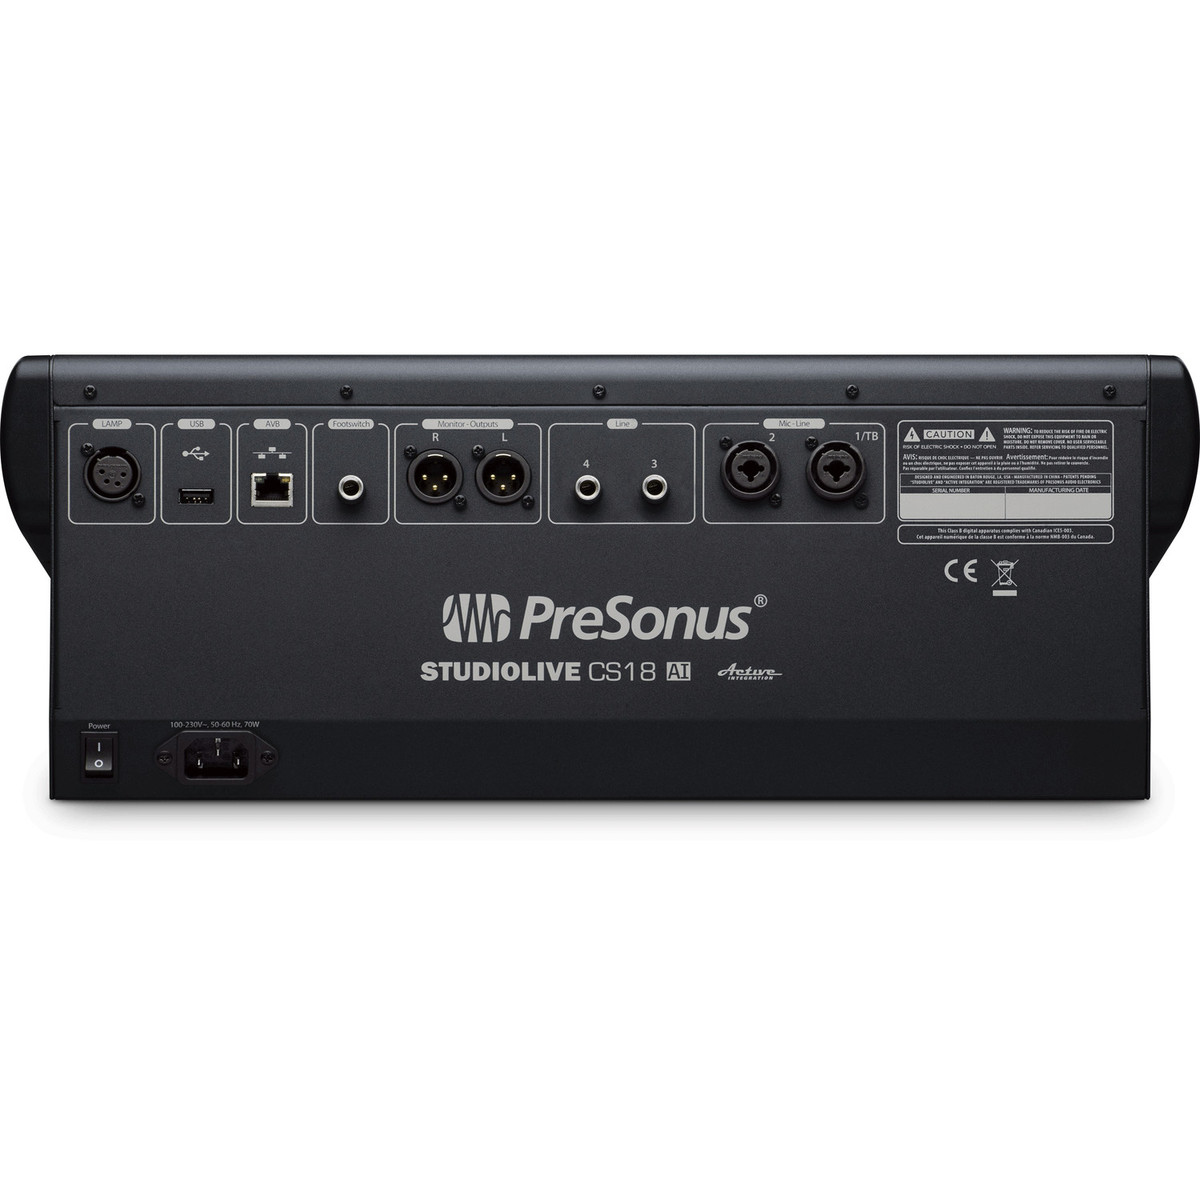 Presonus Cs18ai Control Surface For Studio One With